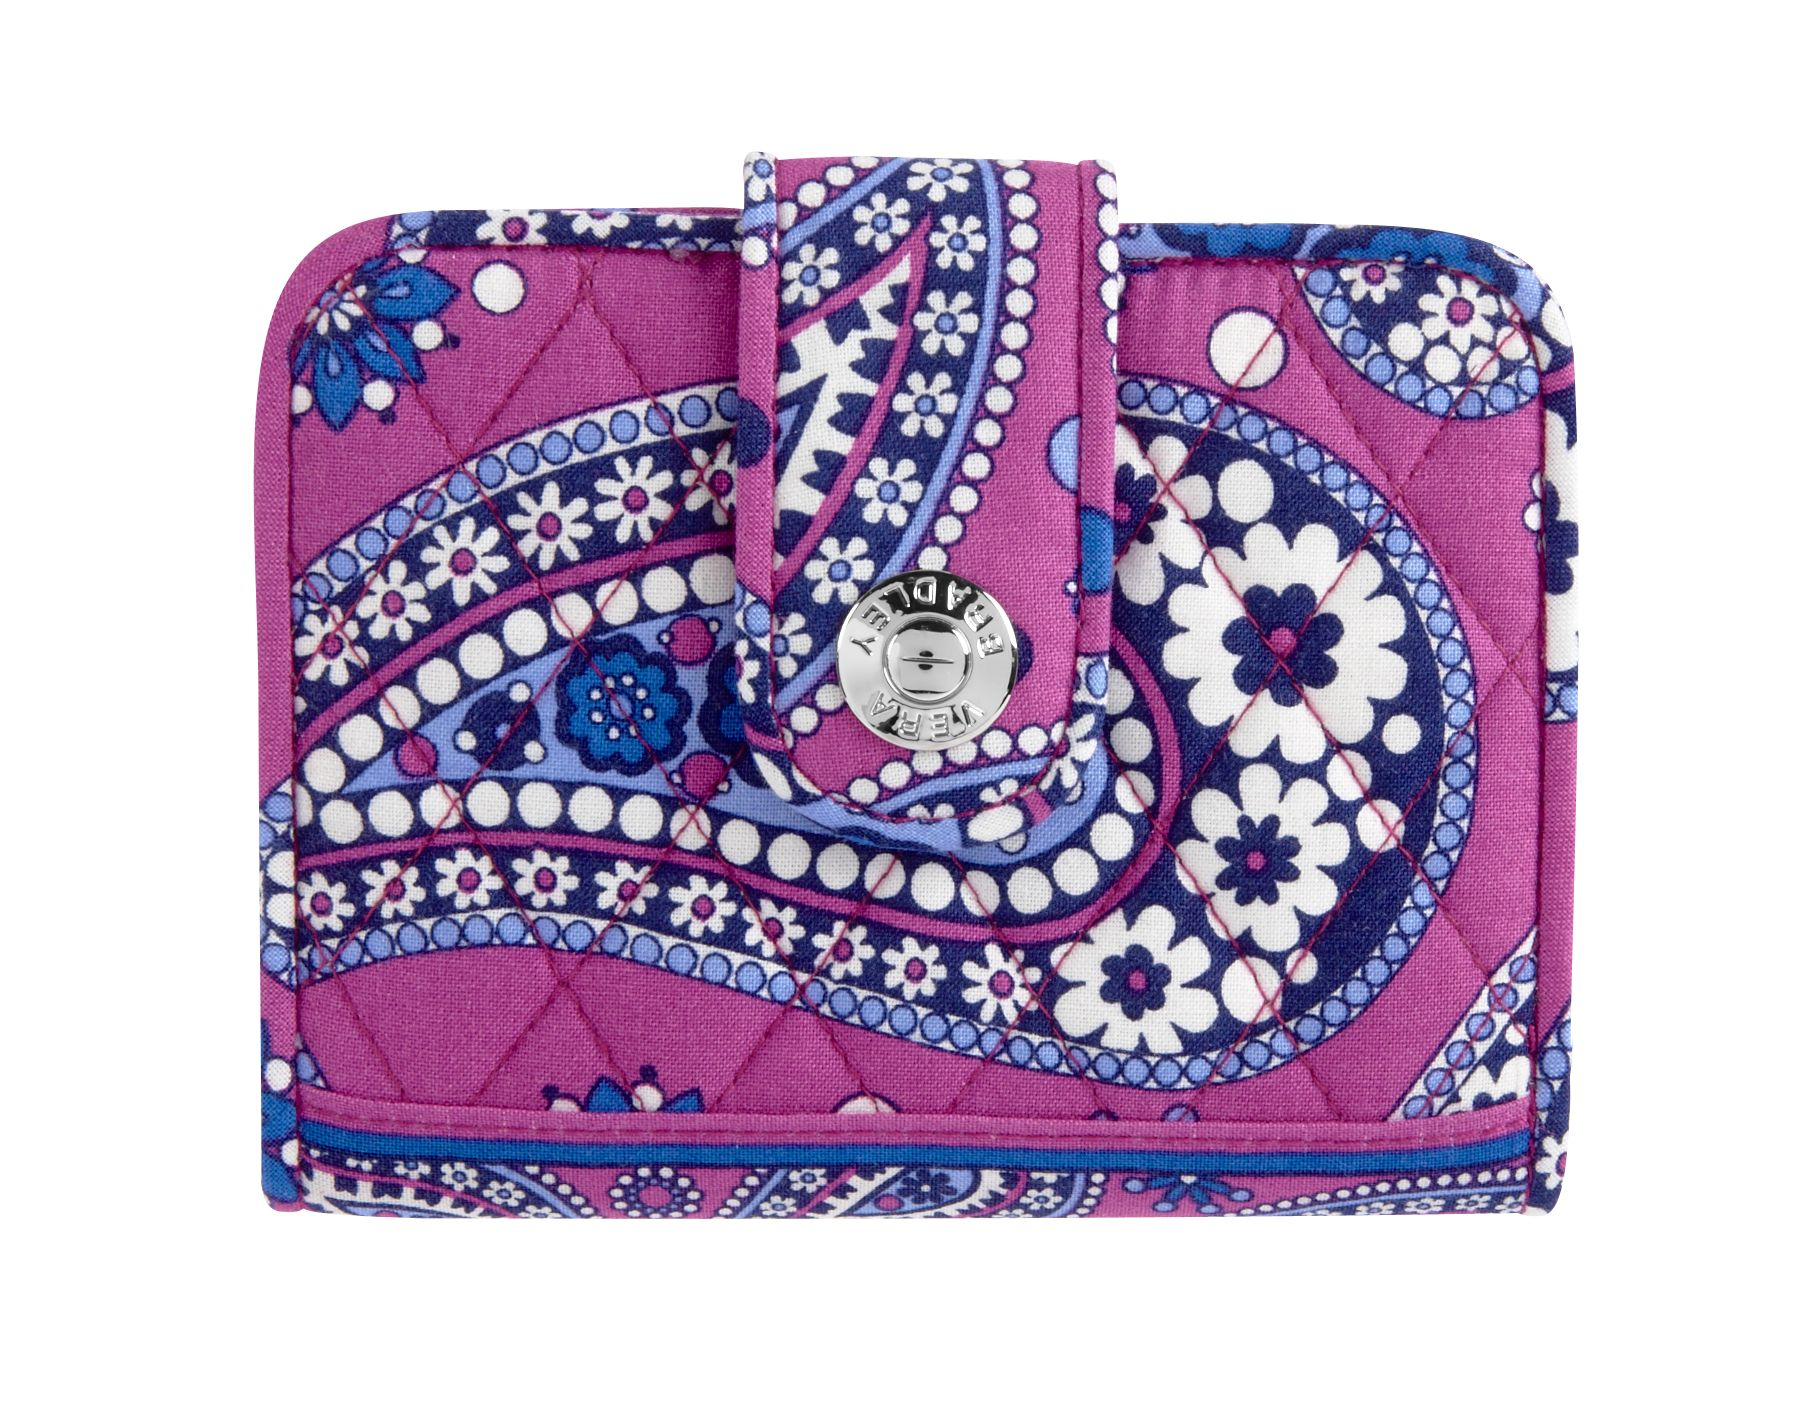 Vera Bradley Snappy Wallet in Boysenberry